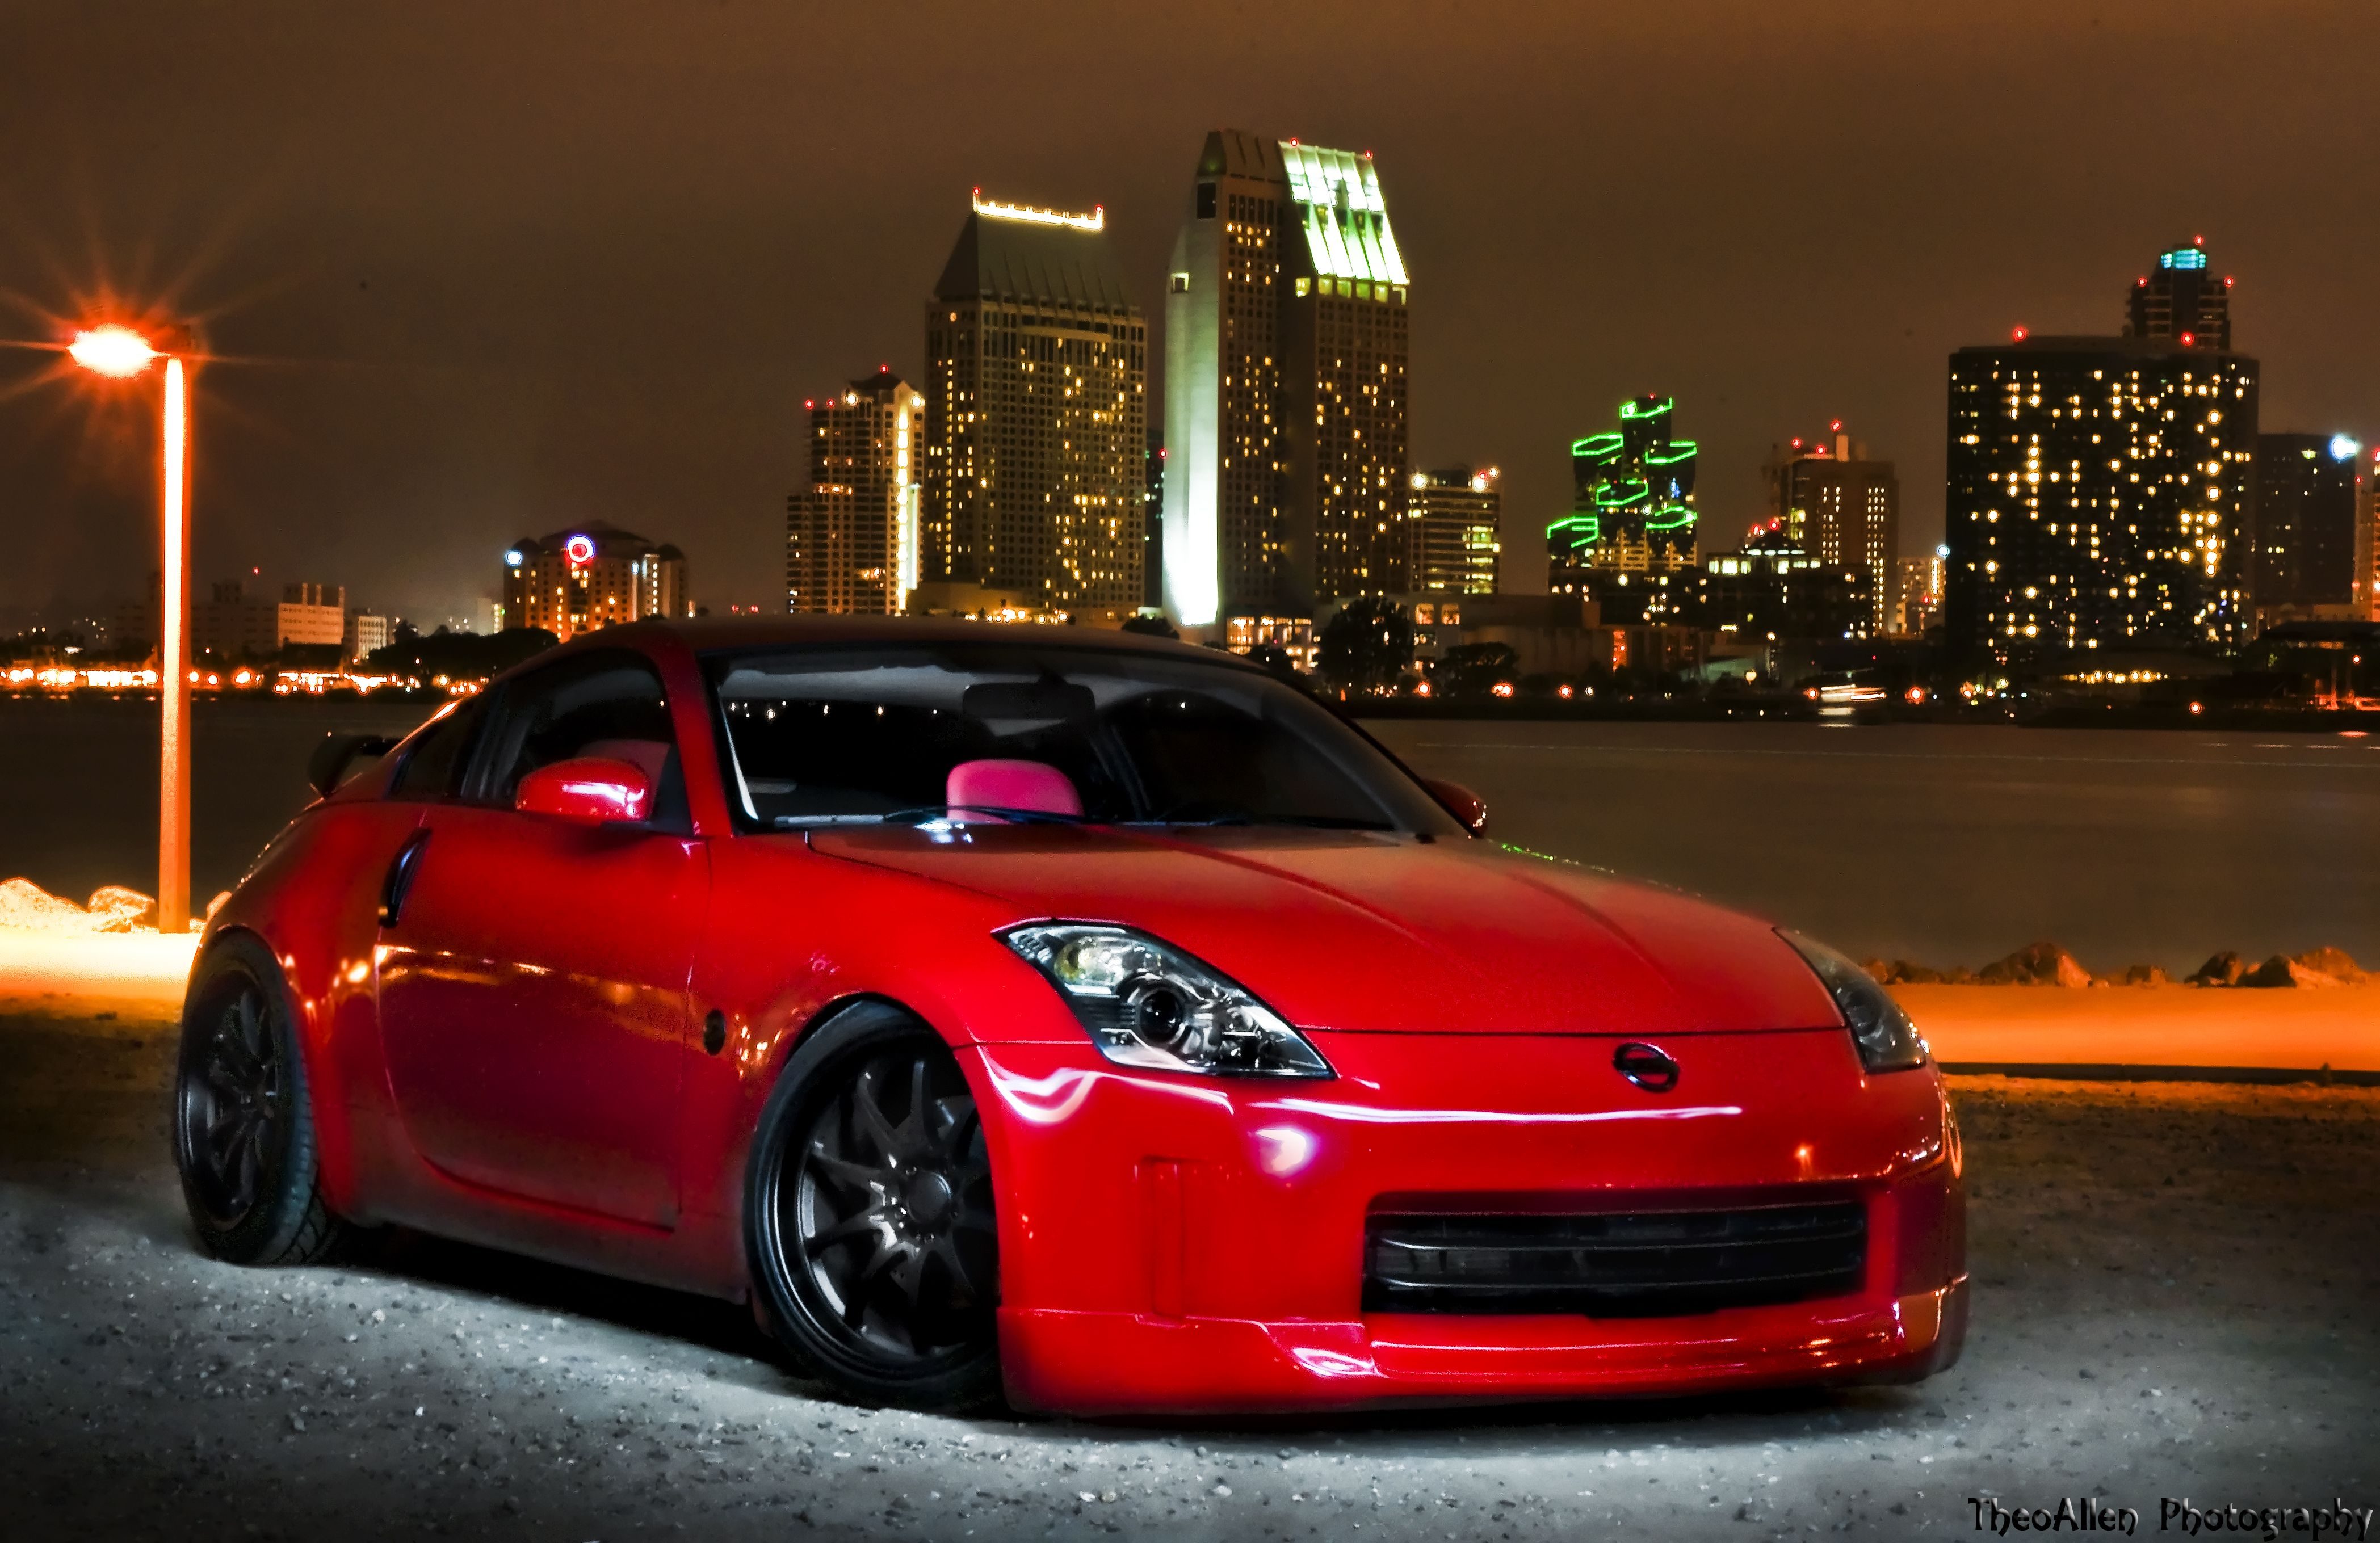 Pin by Ted :) on My Photography | Pinterest | Nissan 350Z, Nissan ...